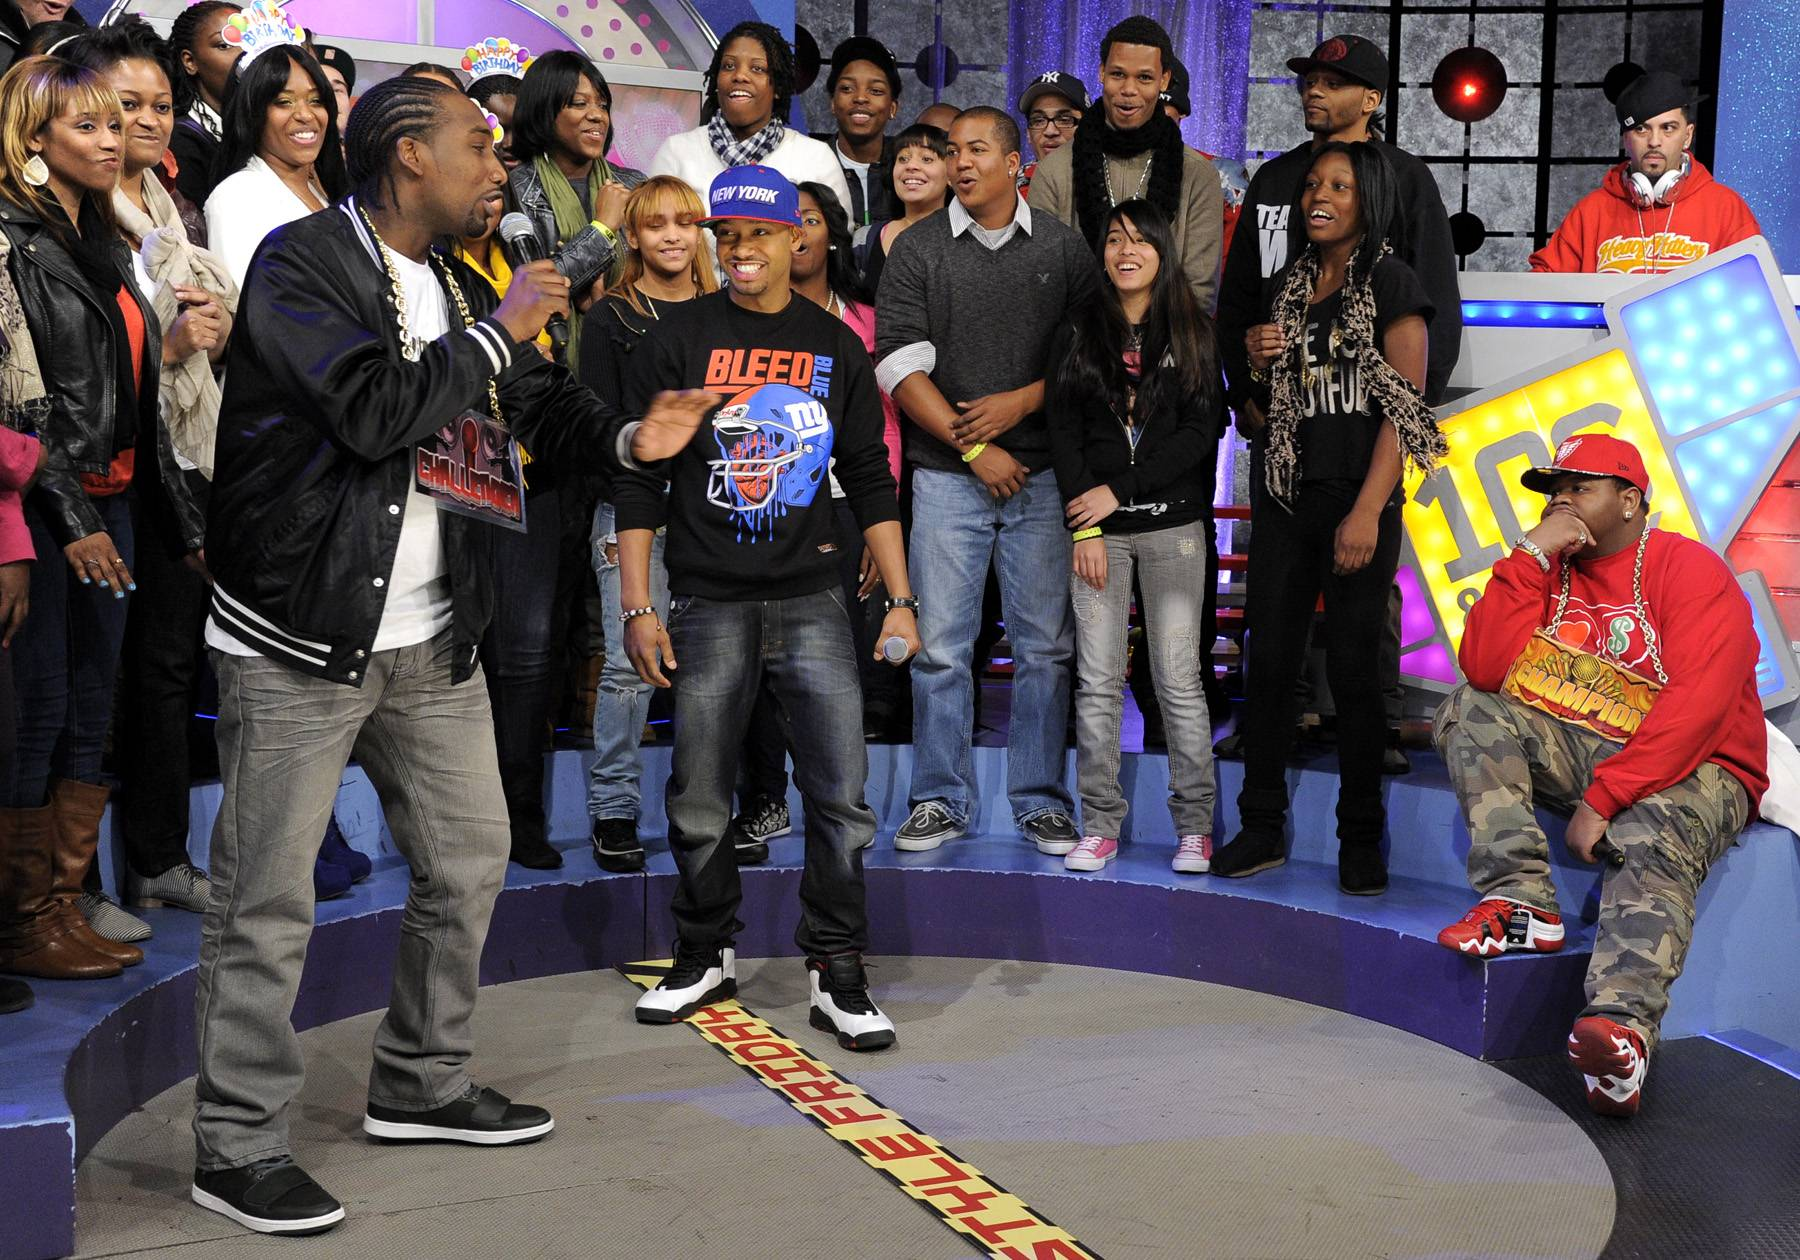 Have a Seat - Freestyle Friday challenger Dolo Chillin delivers his round-one attack at 106 & Park, January 20, 2012. (Photo: John Ricard / BET)